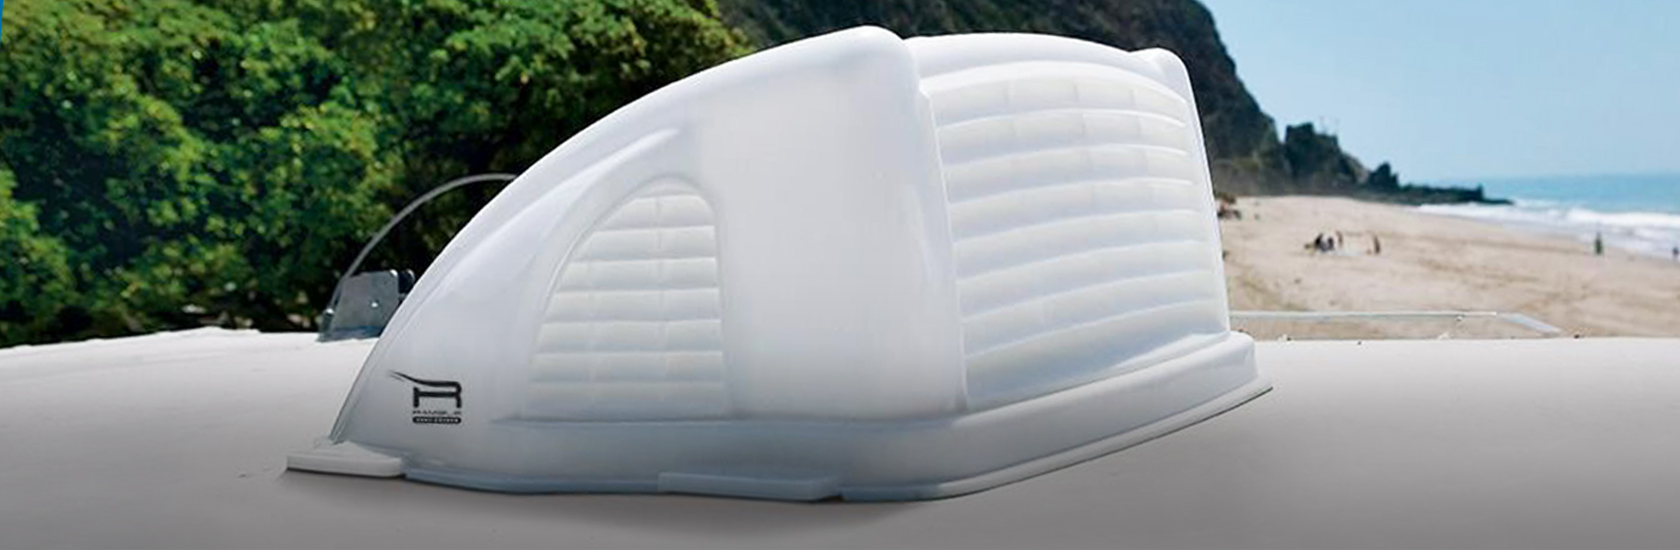 Save up to 40% on RV Roof Vents & Fans